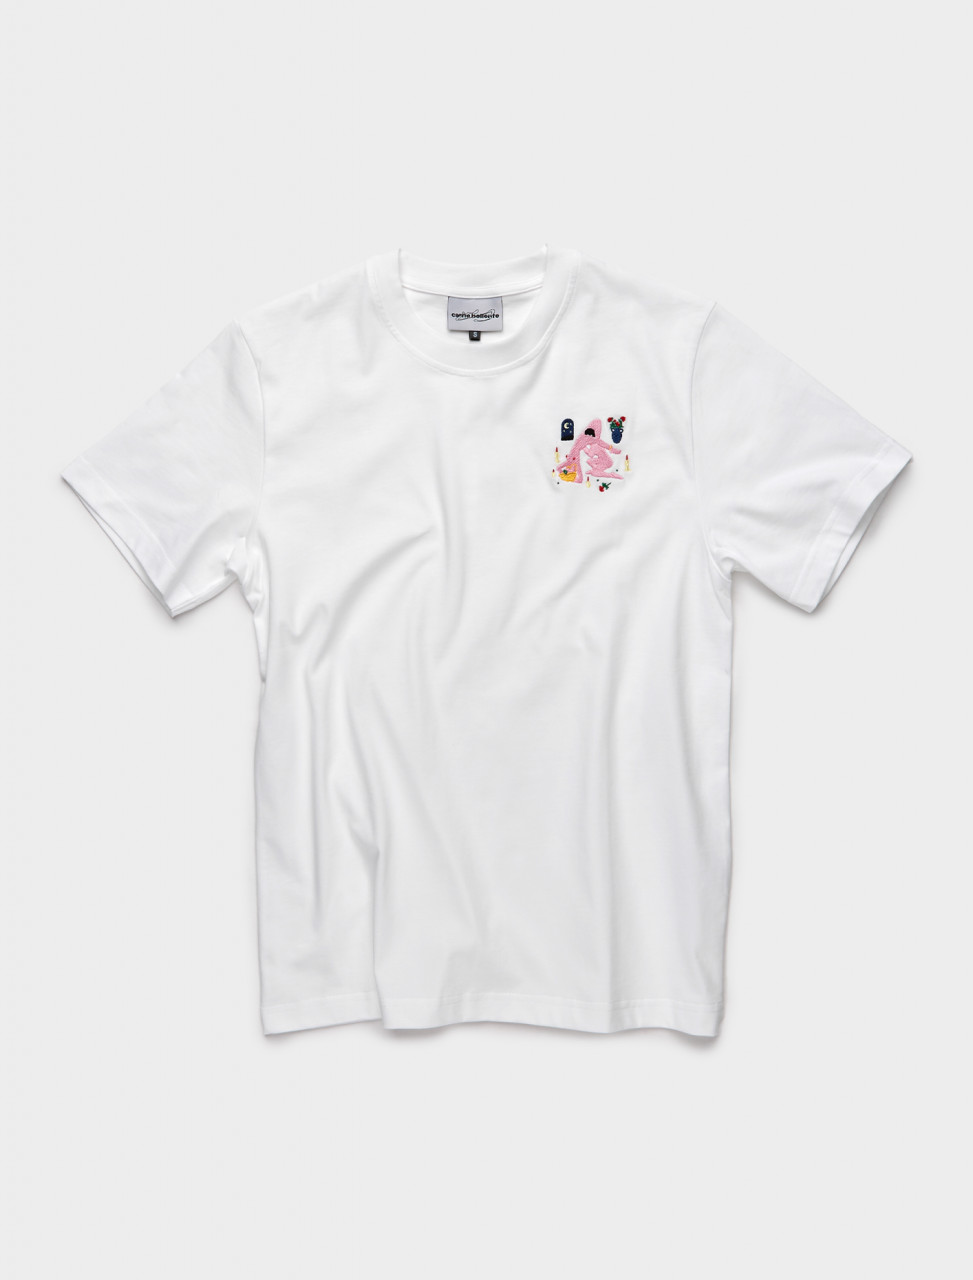 PRESS21TS03-W CARNE BOLLENTE EYES WIDE CHEAT T SHIRT WHITE